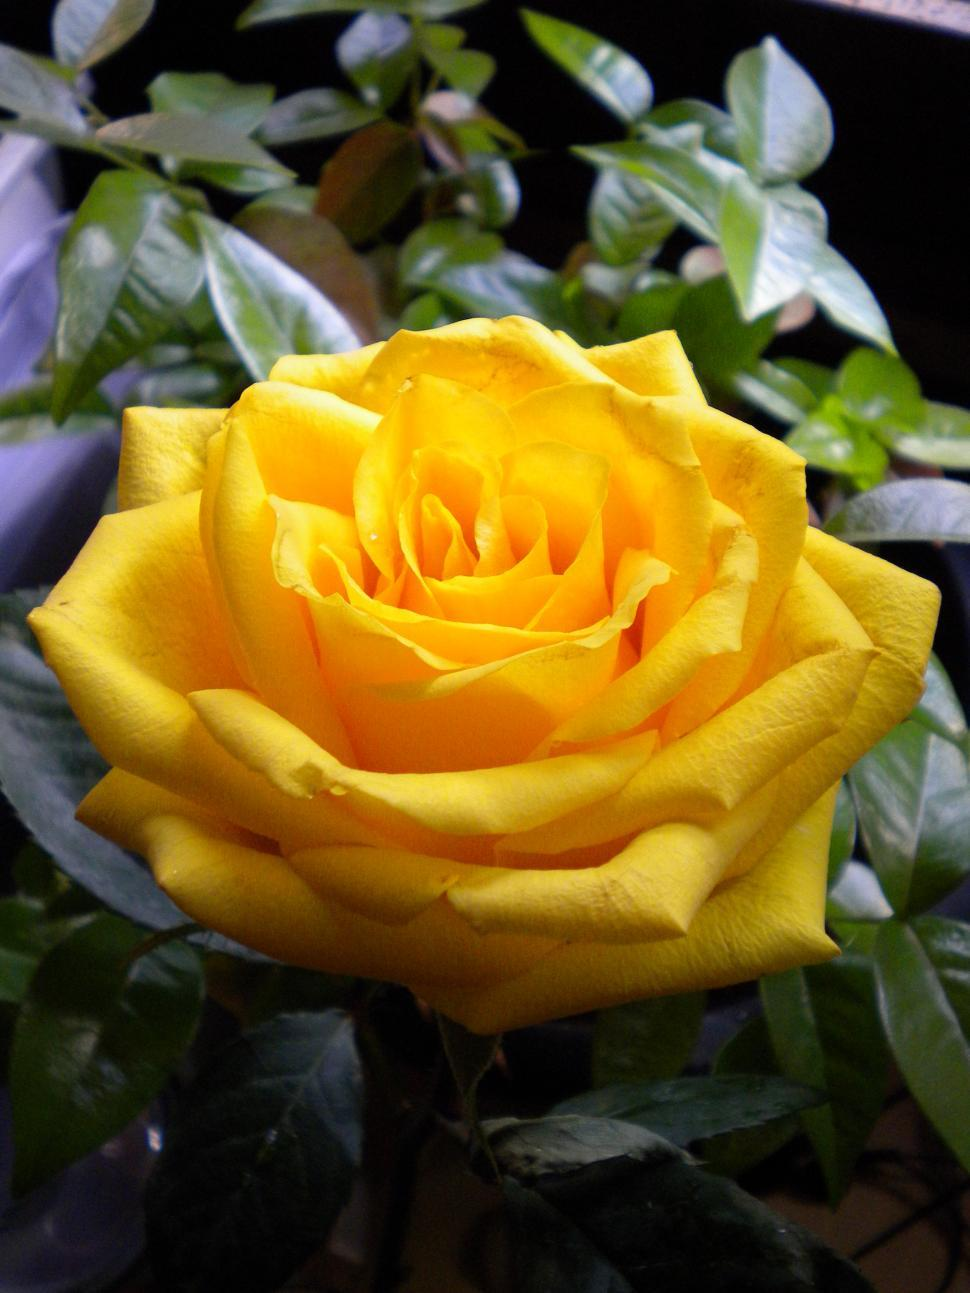 Download Free Stock HD Photo of yellow rose Online